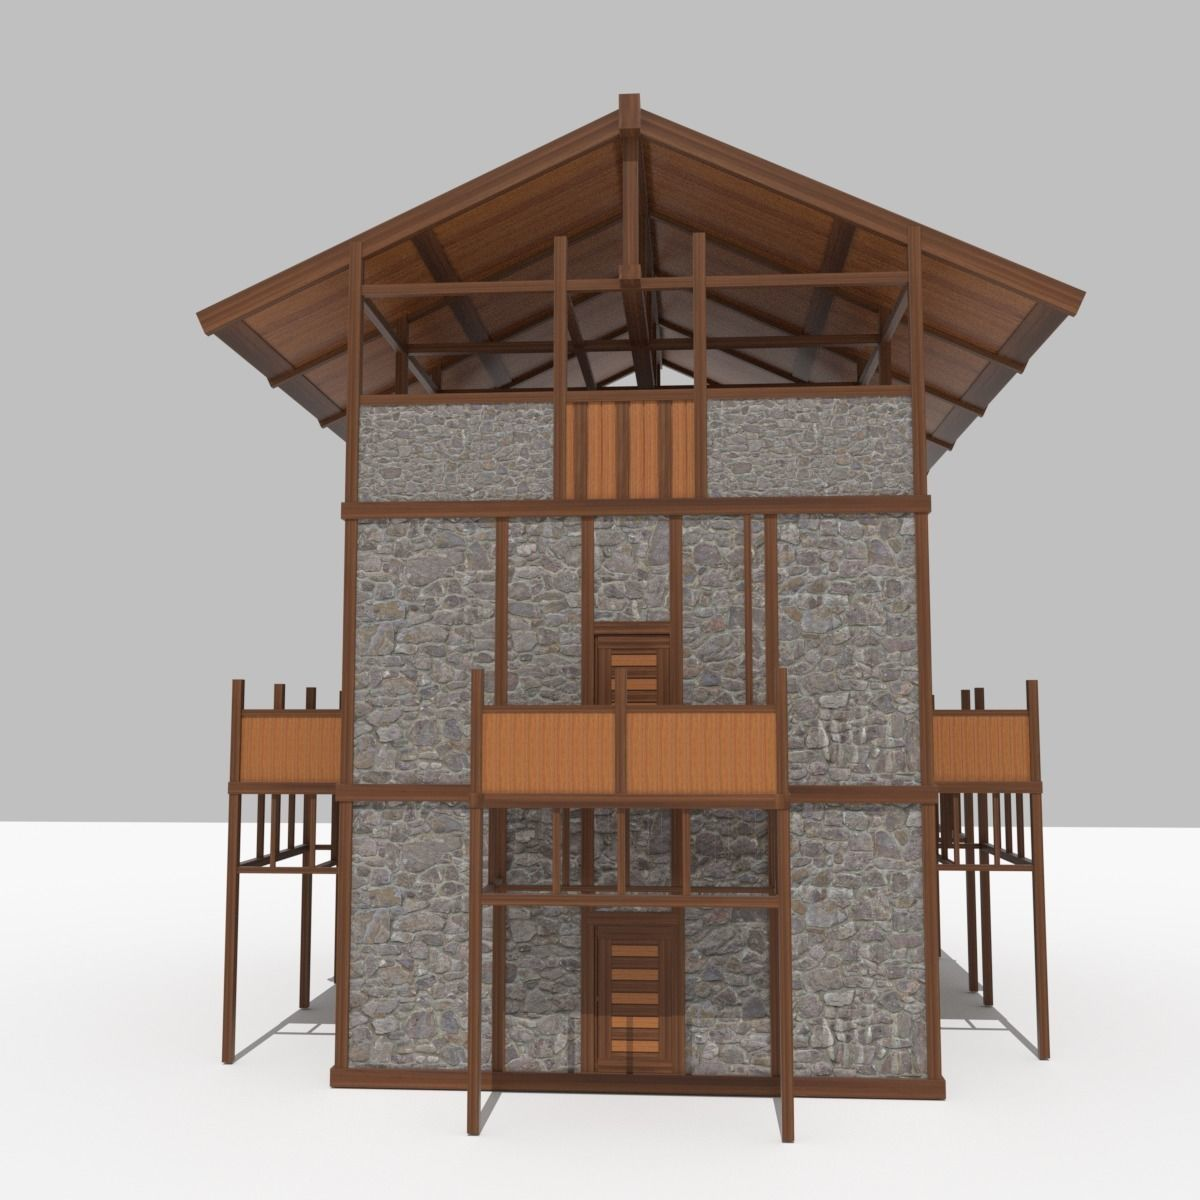 Medieval Outpost building